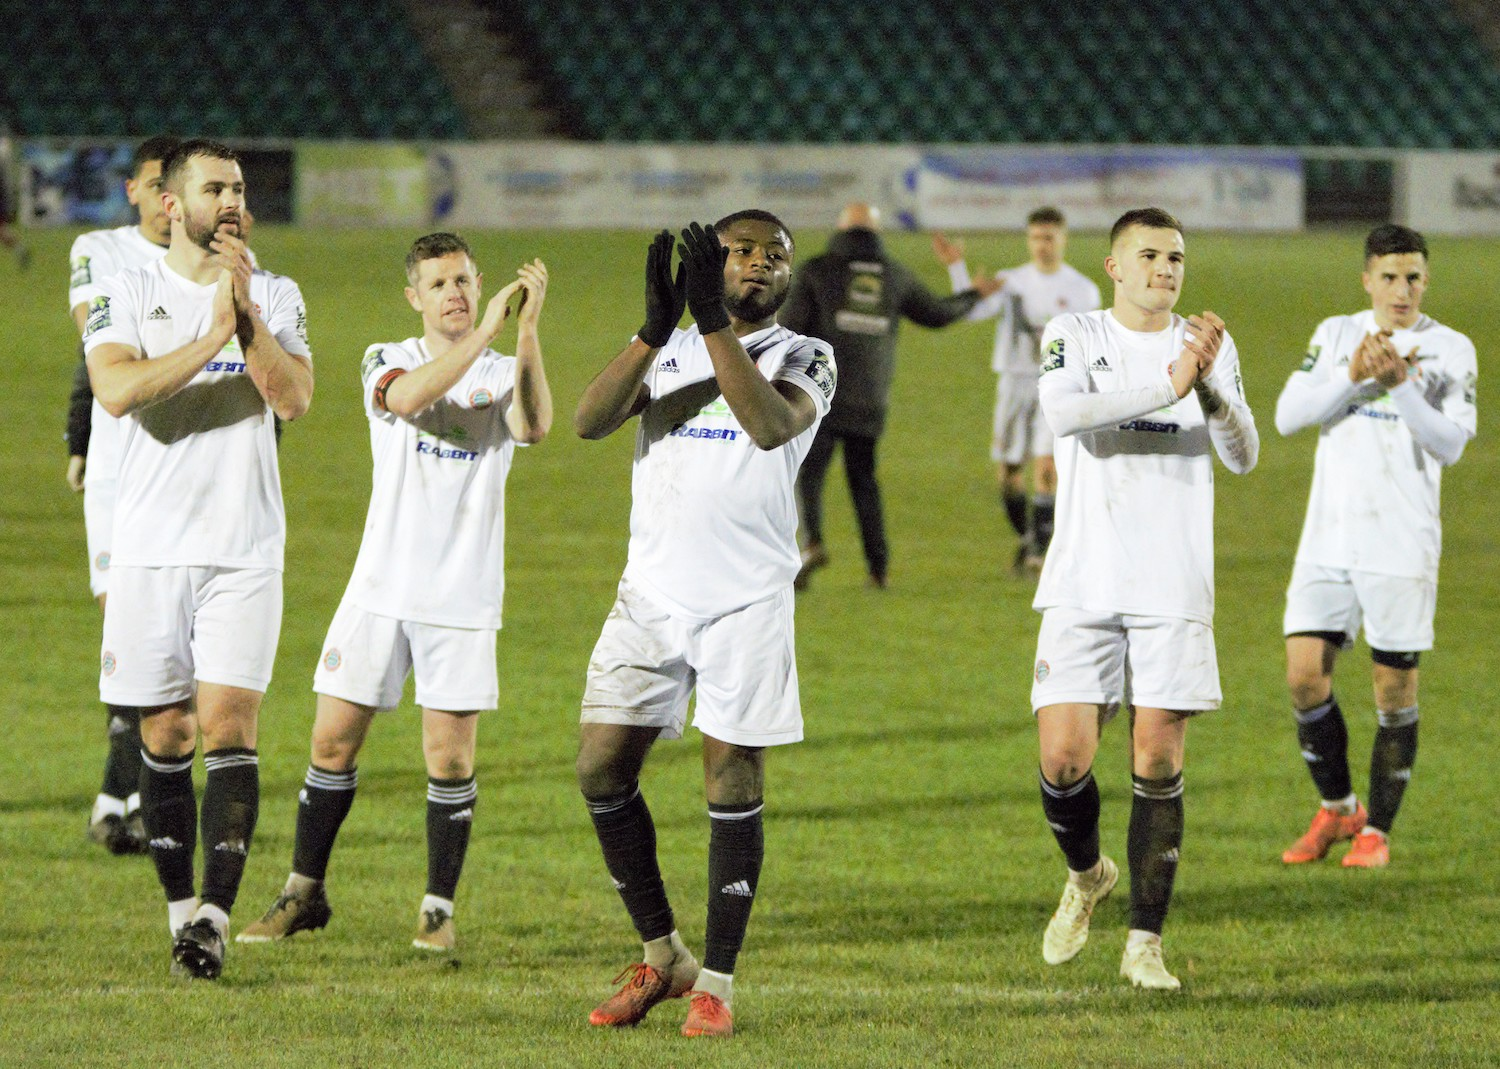 Read the full article - HIGHLIGHTS: Whitehawk 1-2 Worthing [A] – League